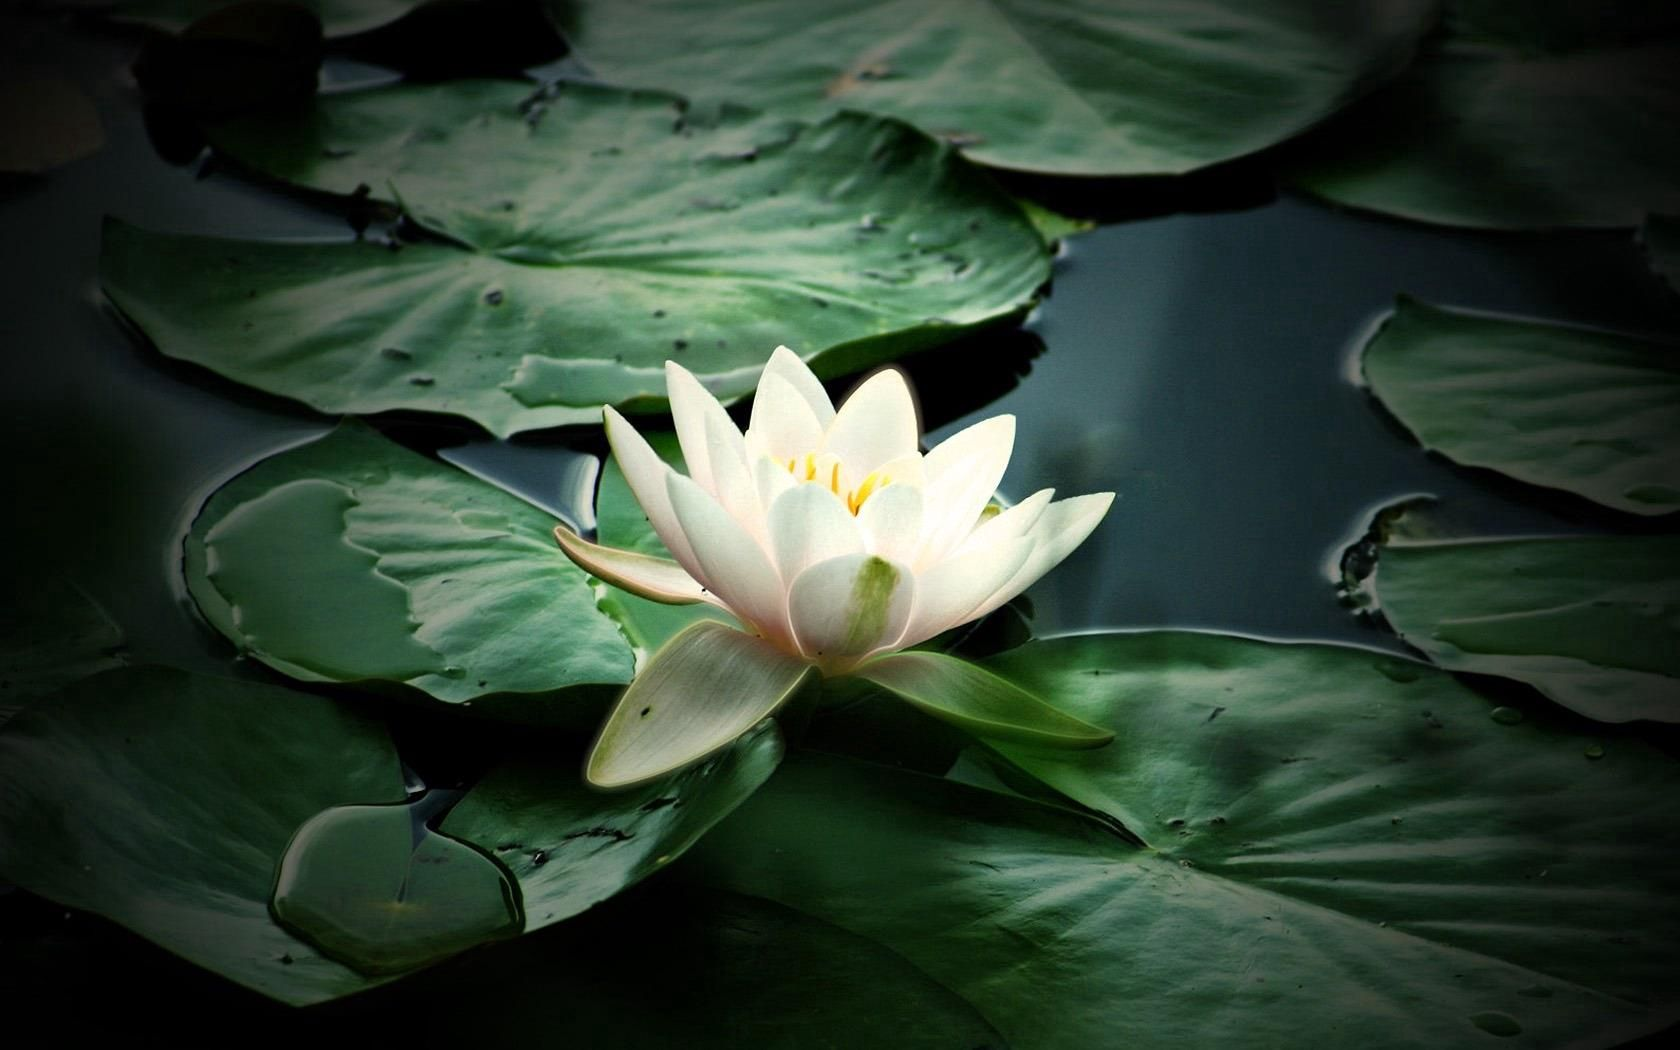 127004 download wallpaper Flowers, Water, Leaves, Swamp, Water Lily screensavers and pictures for free